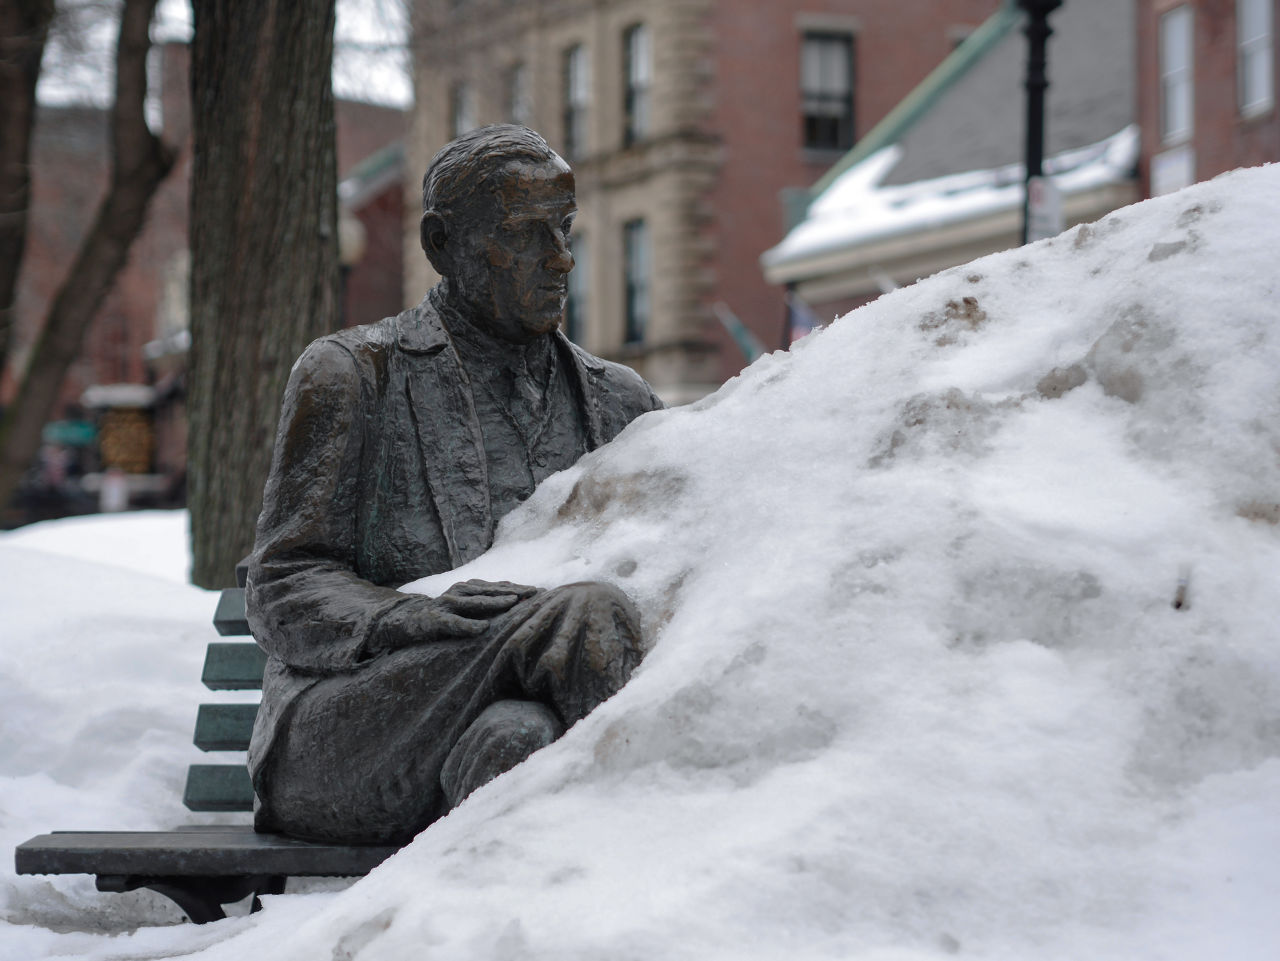 Despite record February snowfall in and around Boston, hoteliers emerged largely unscathed. (KAdam/Flickr)